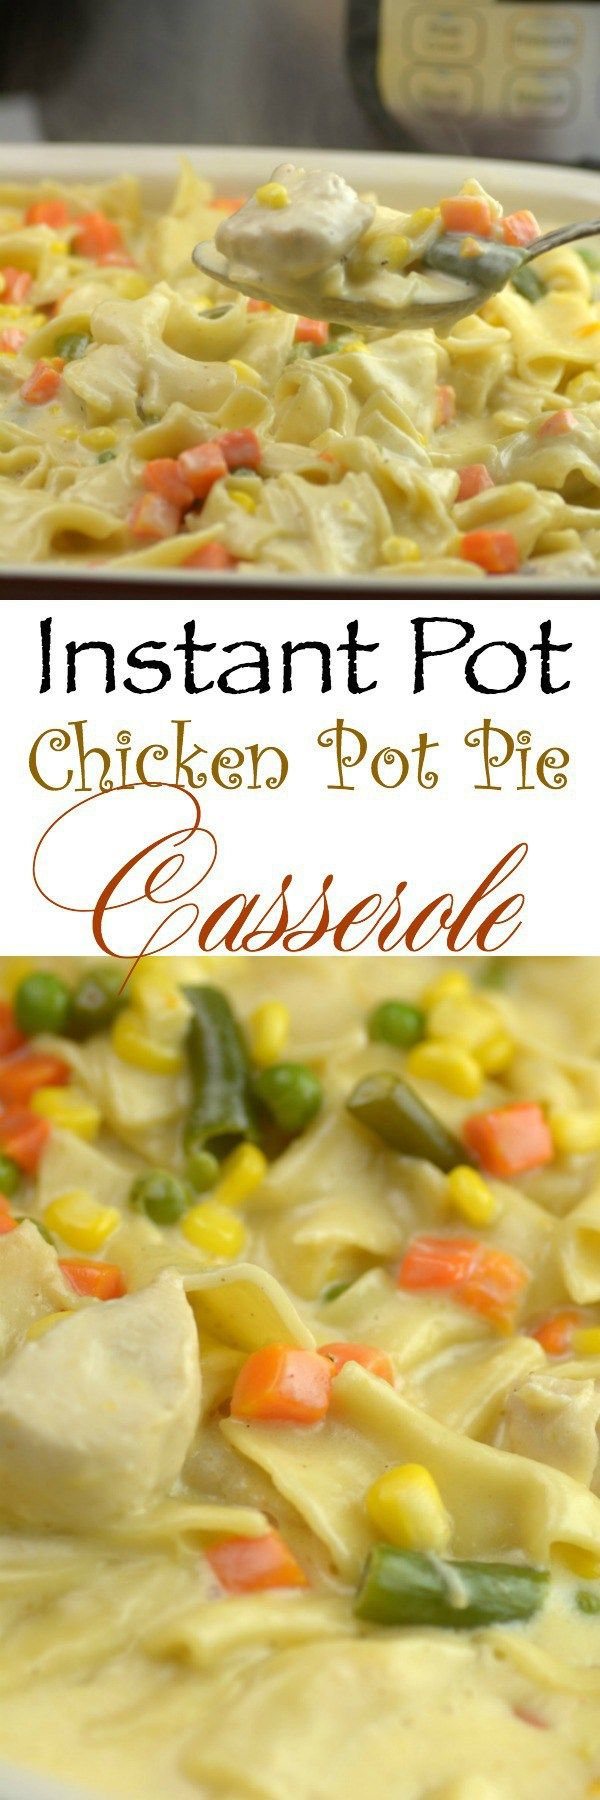 This instant pot chicken pot pie casserole is so yummy and delicious it will be the perfect comfort food you need on a chilly night. Pin for Later! #chicken #chickendinner #recipe #instantpot #pressure ##pressurecooker